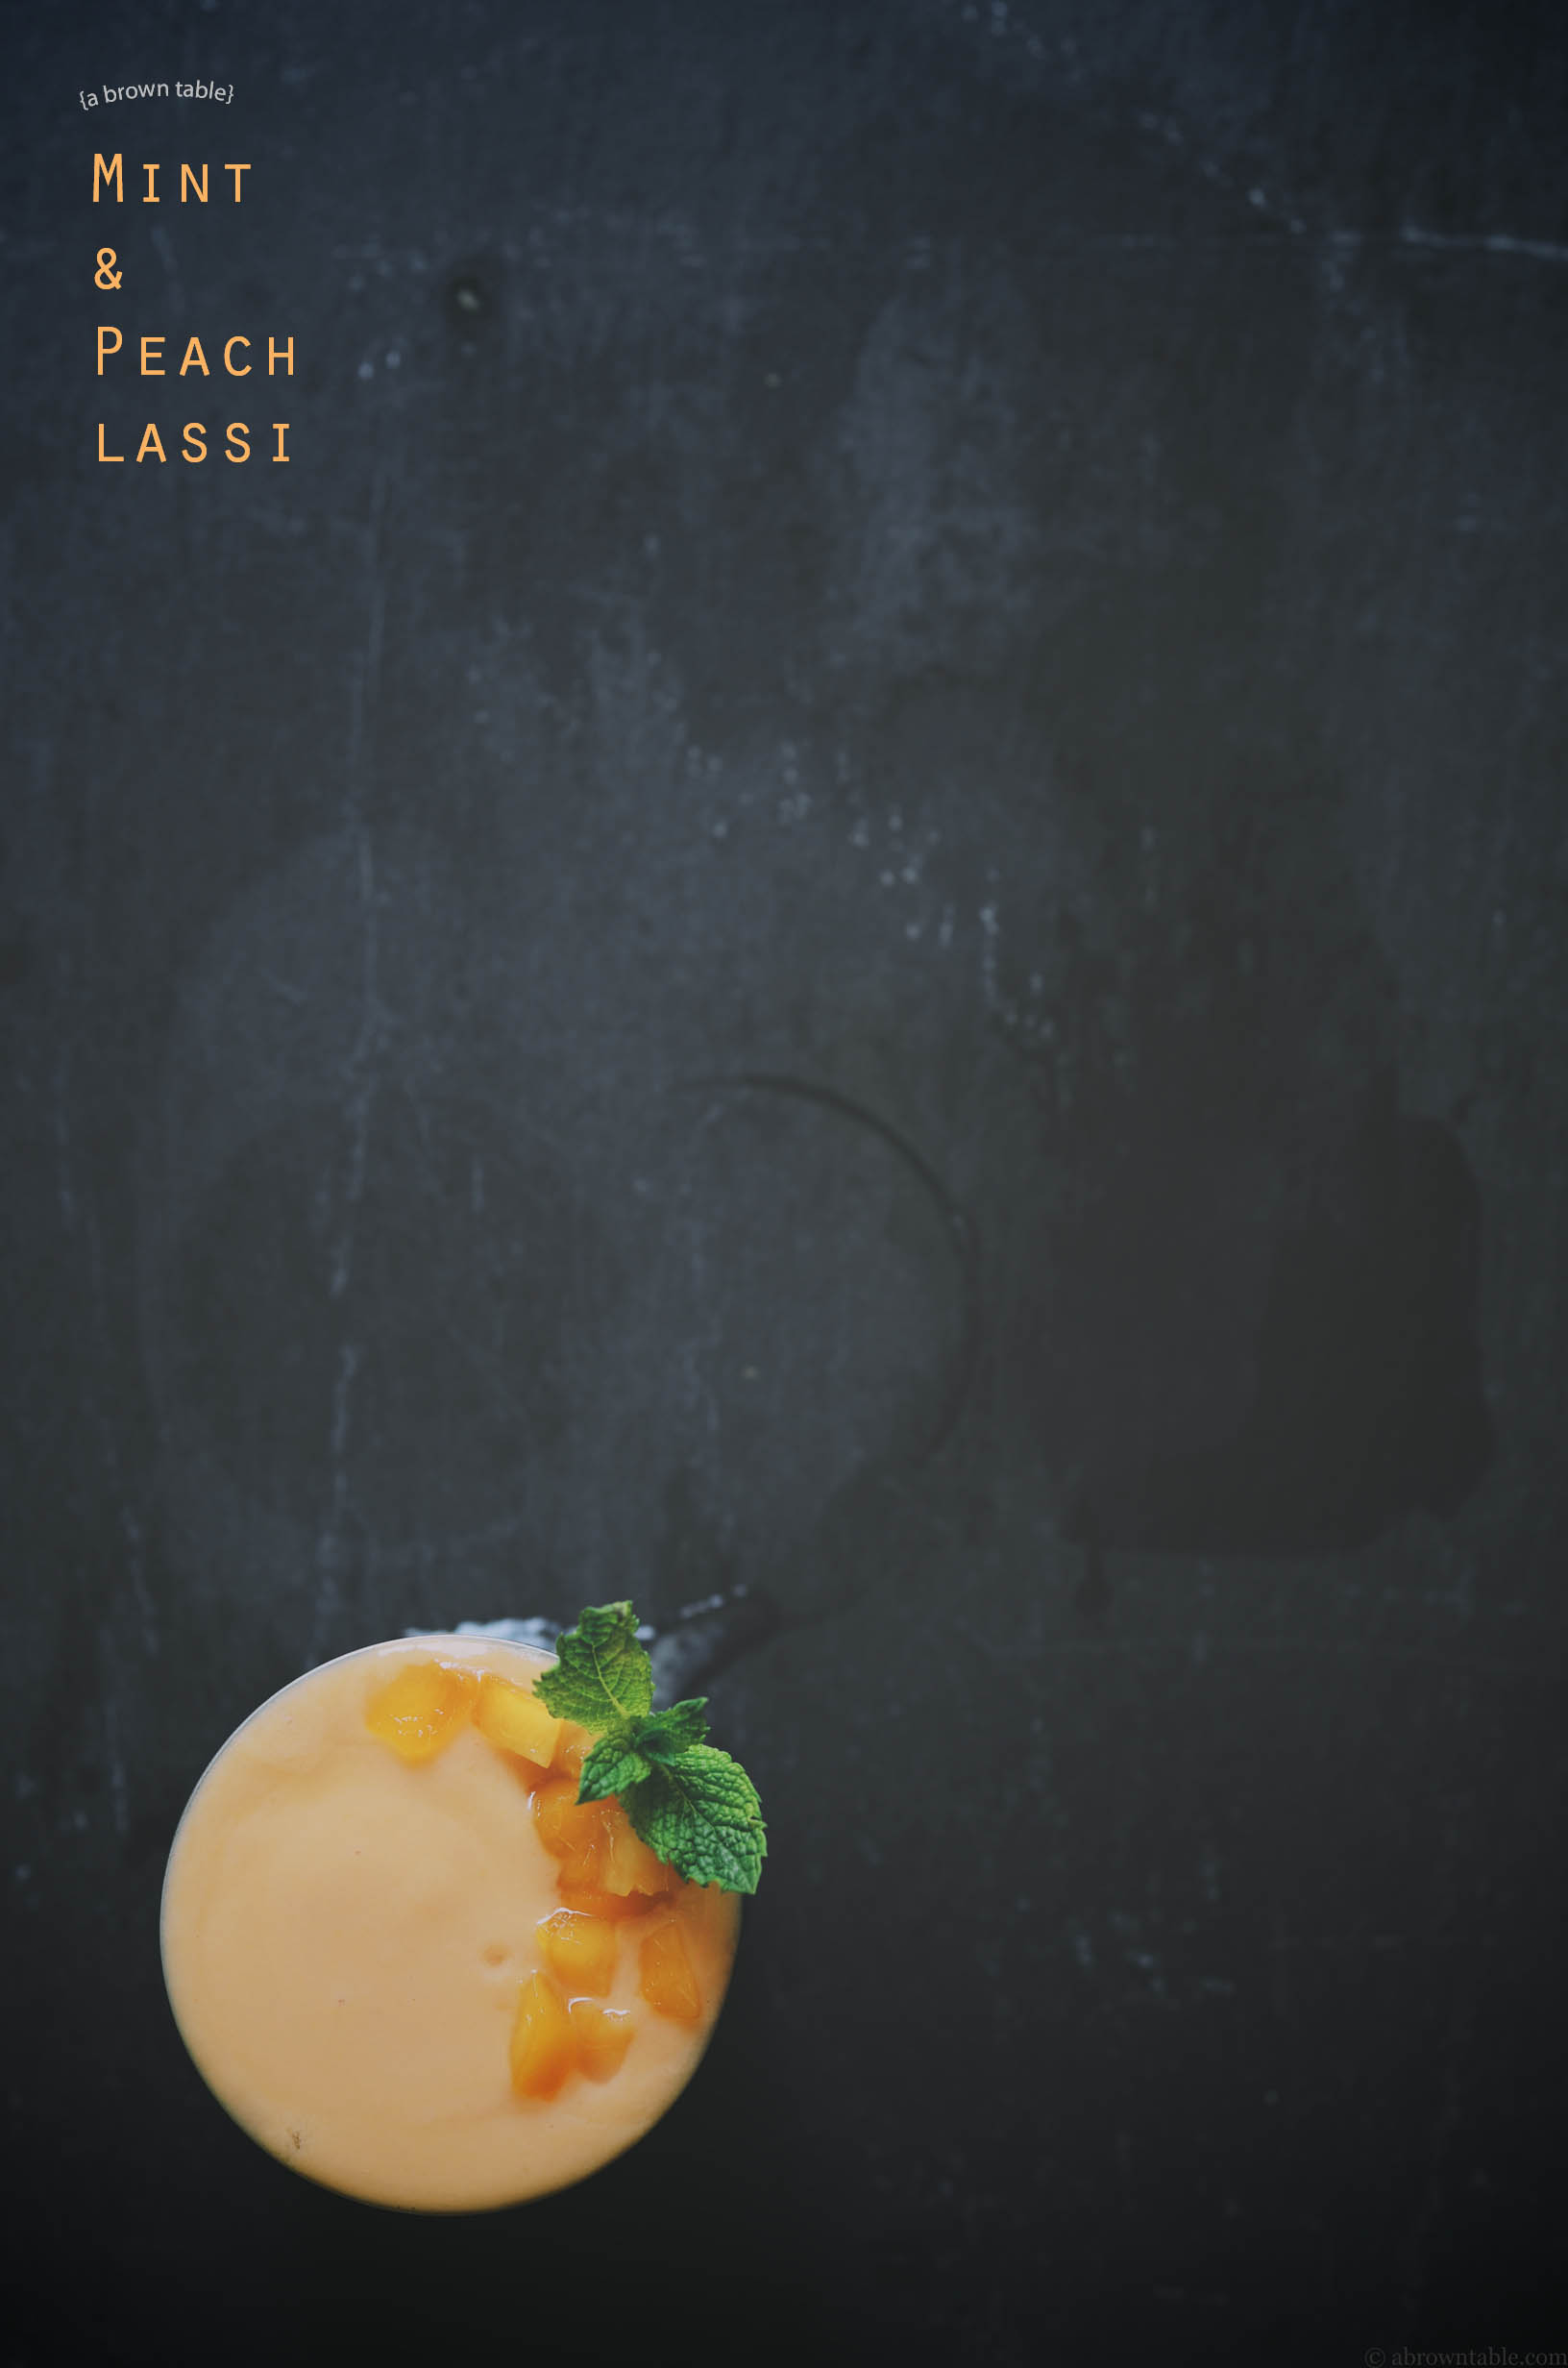 peach lassi with mint